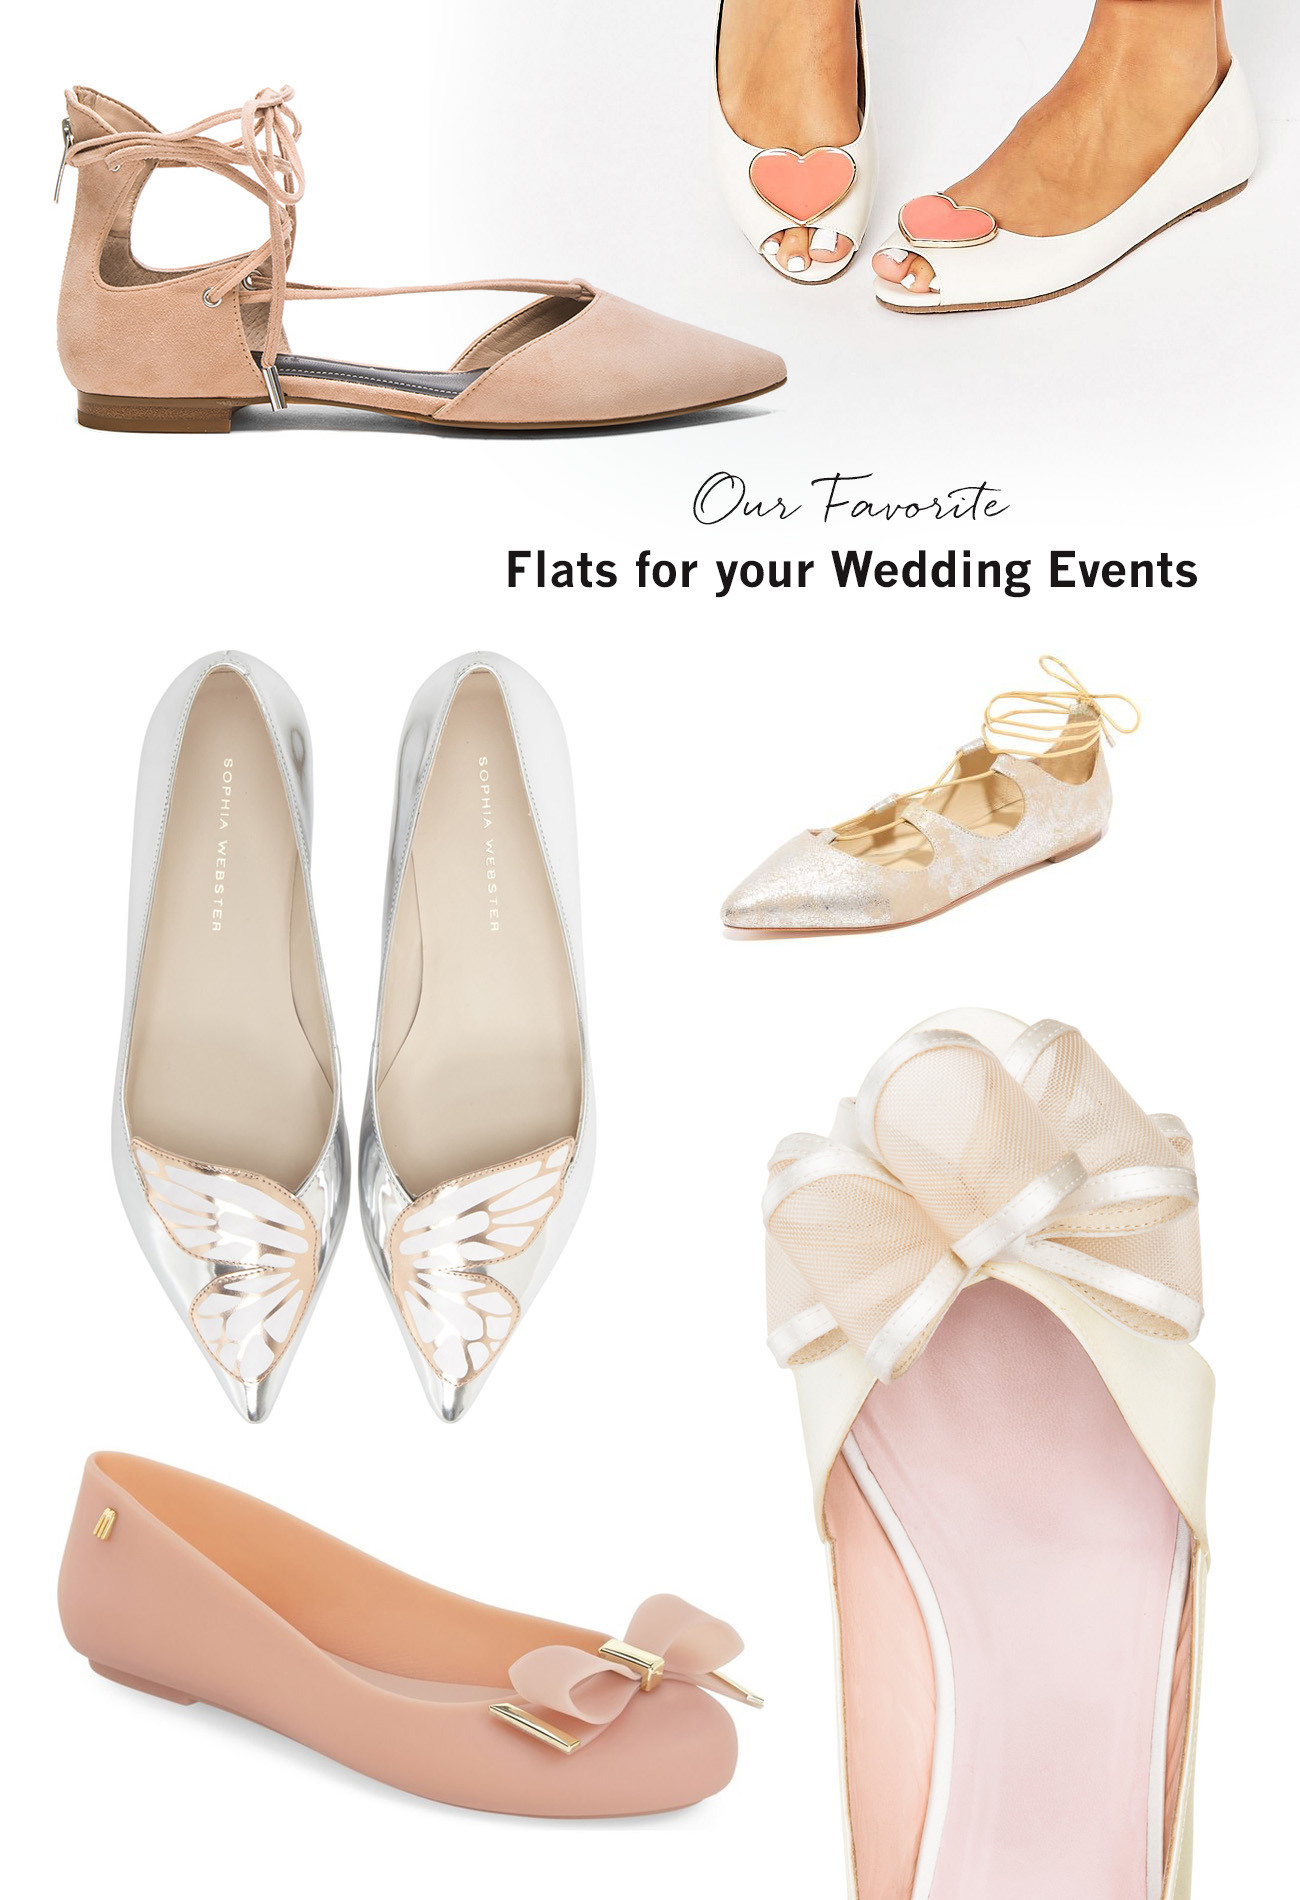 0a05696f0590f Our Favorite Flats for your Wedding - Green Wedding Shoes